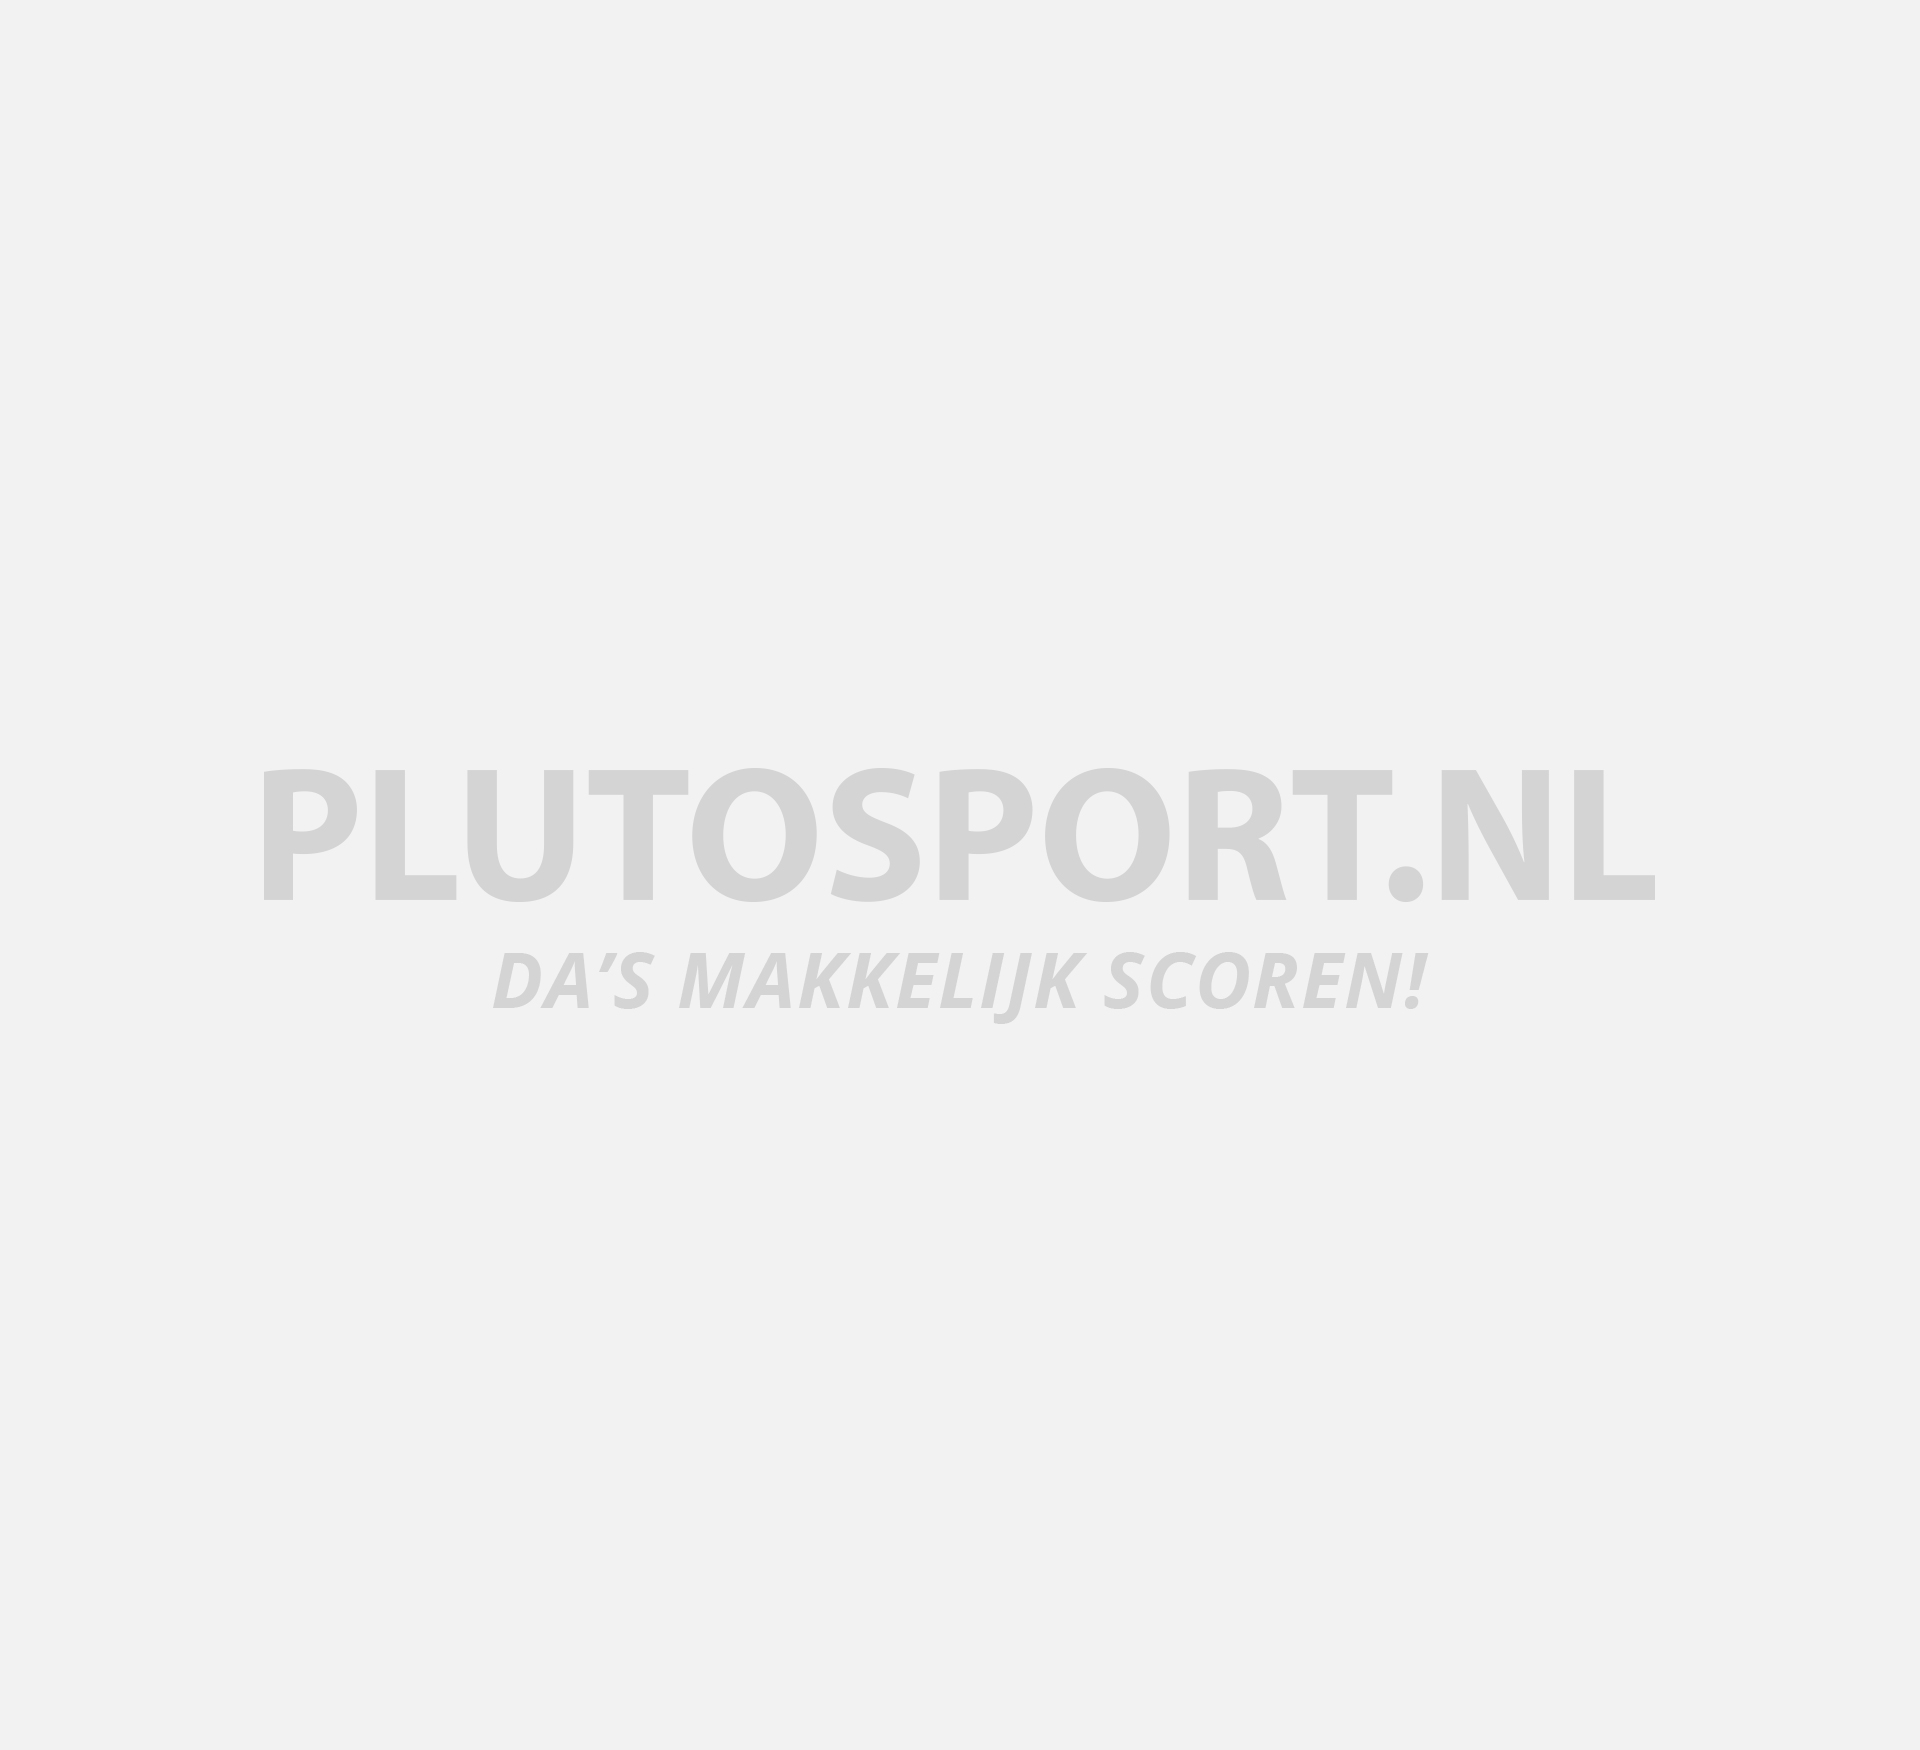 Adidas Duitsland Voetbalshirt 'Thuis' Dames